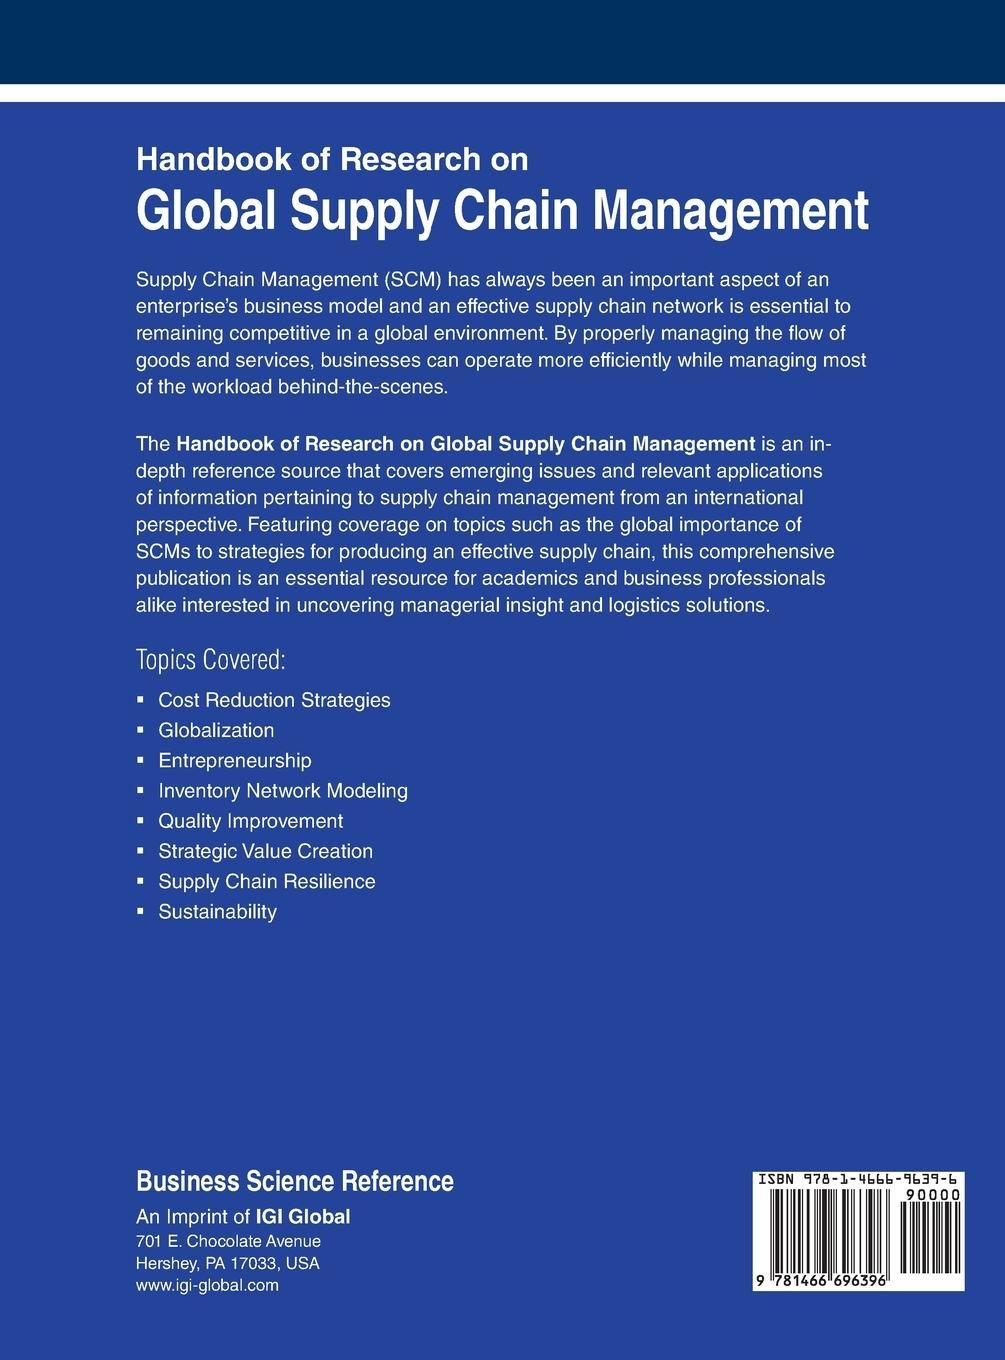 supply chain management research topics